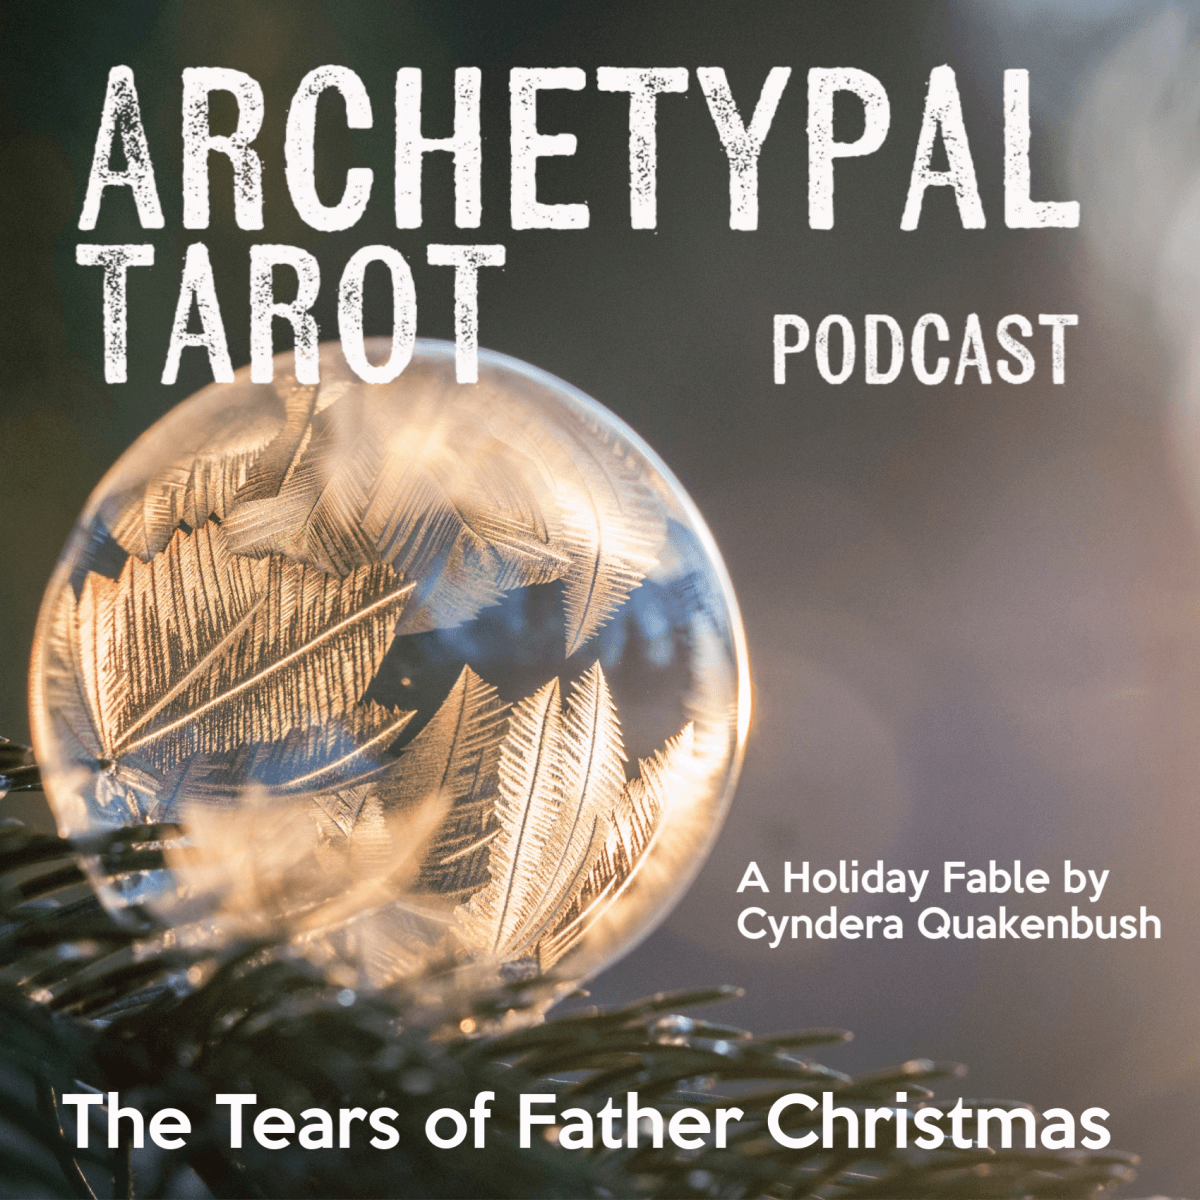 The Tears of Father Christmas: A Holiday Fable